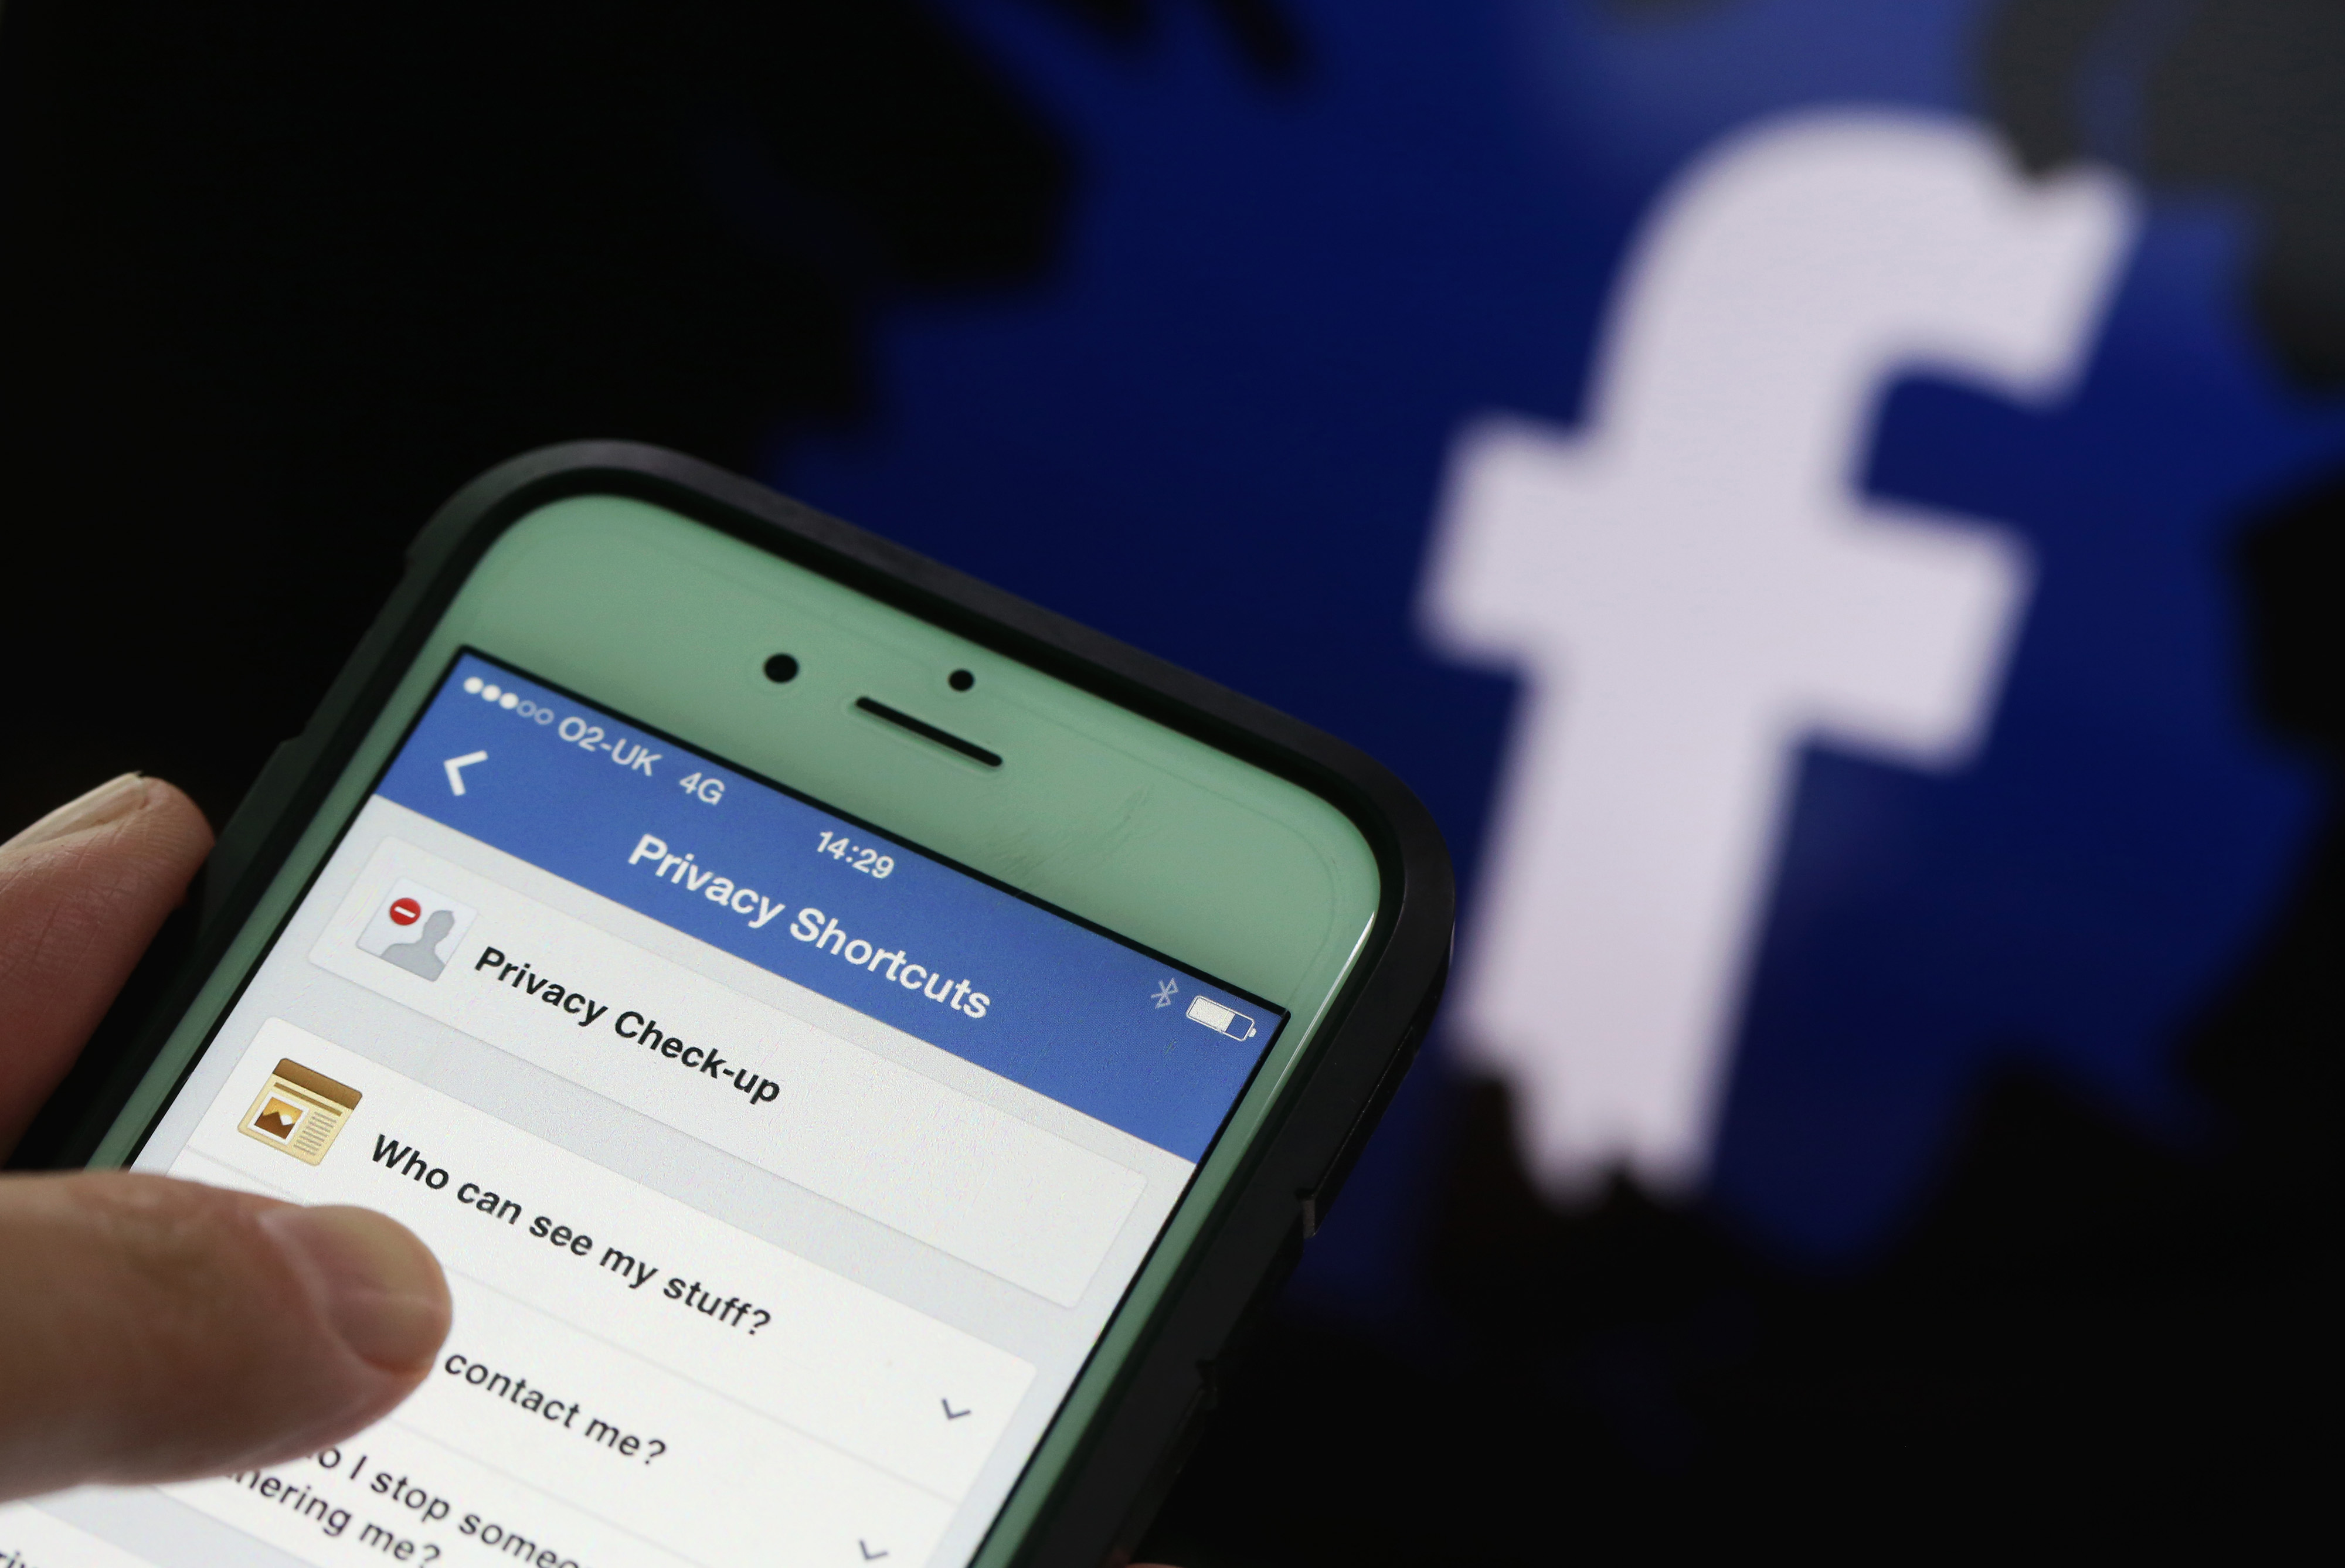 Facebook's Location-Based Friend Suggestions Raise Concerns | Money